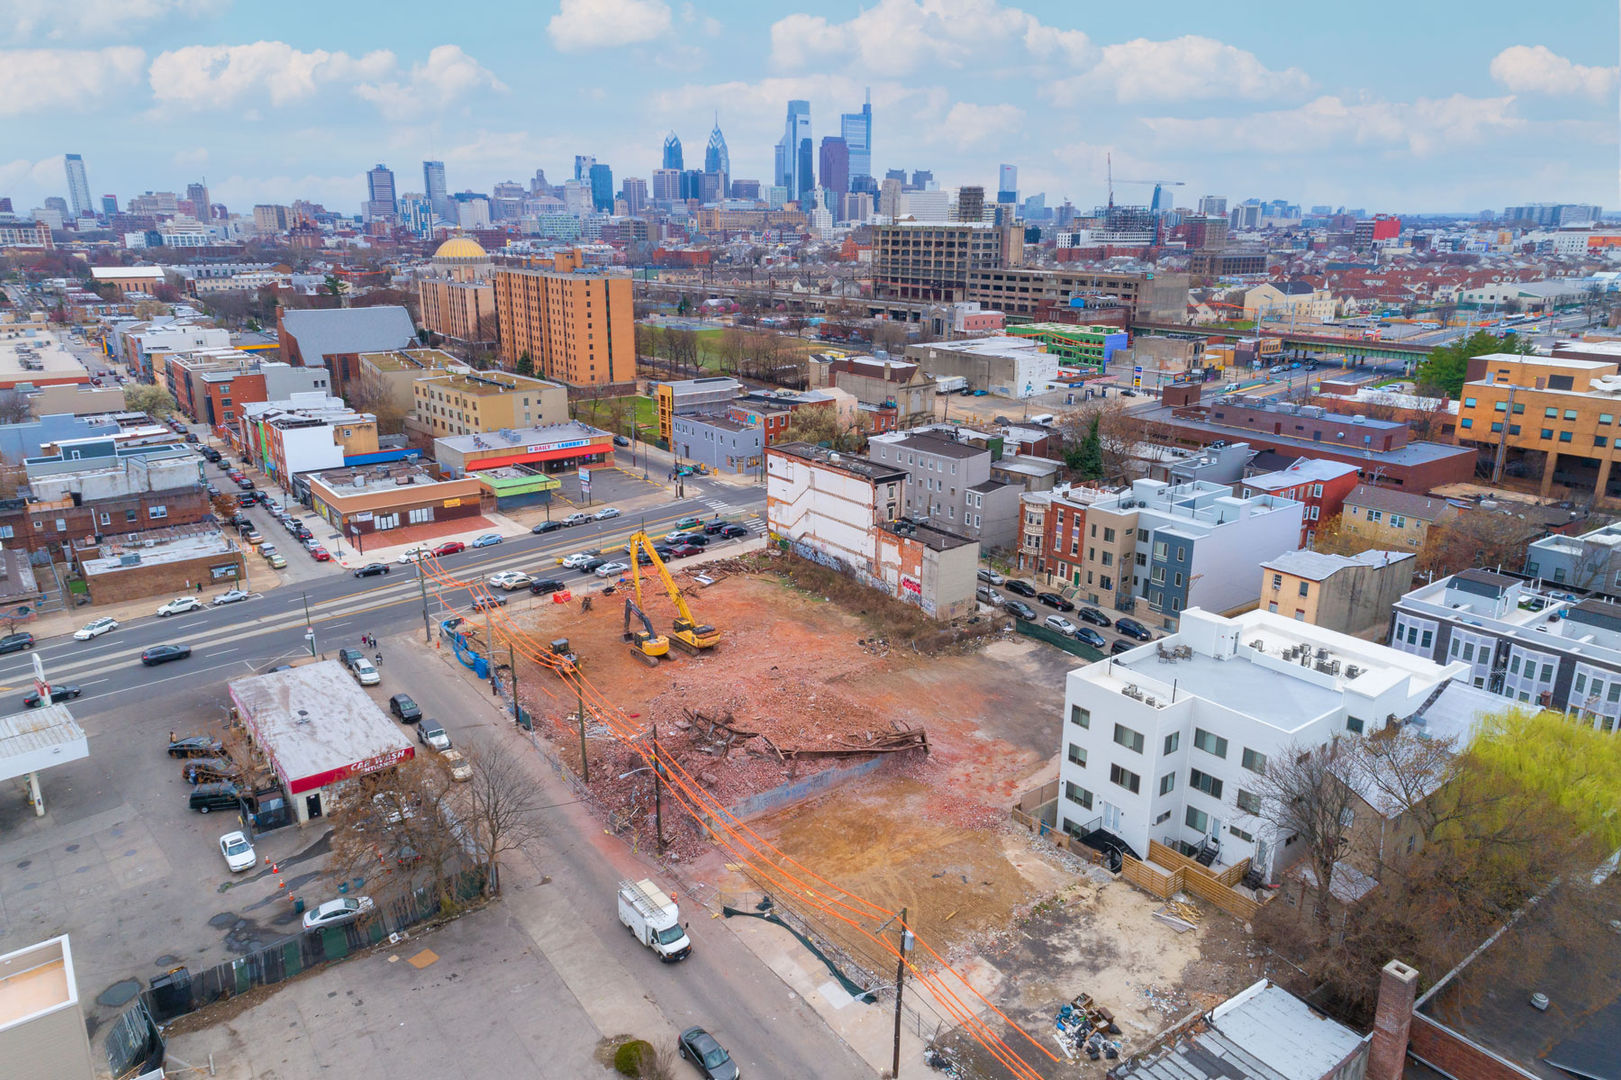 629-33-W-GIRARD-AVE-AERIAL-2020-03-12-WE